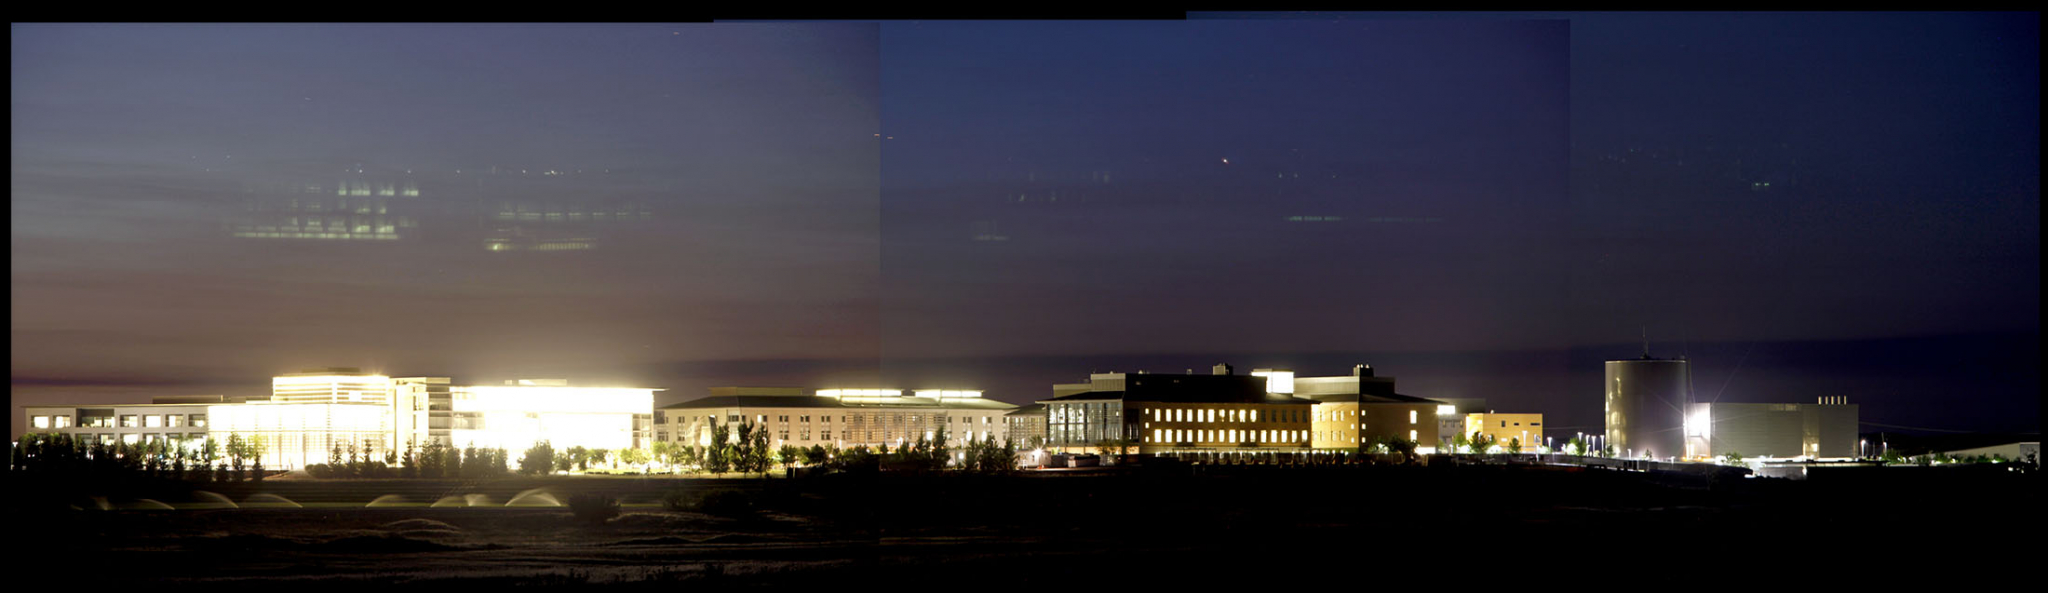 UC Merced University Campus Architectural Photography Overview